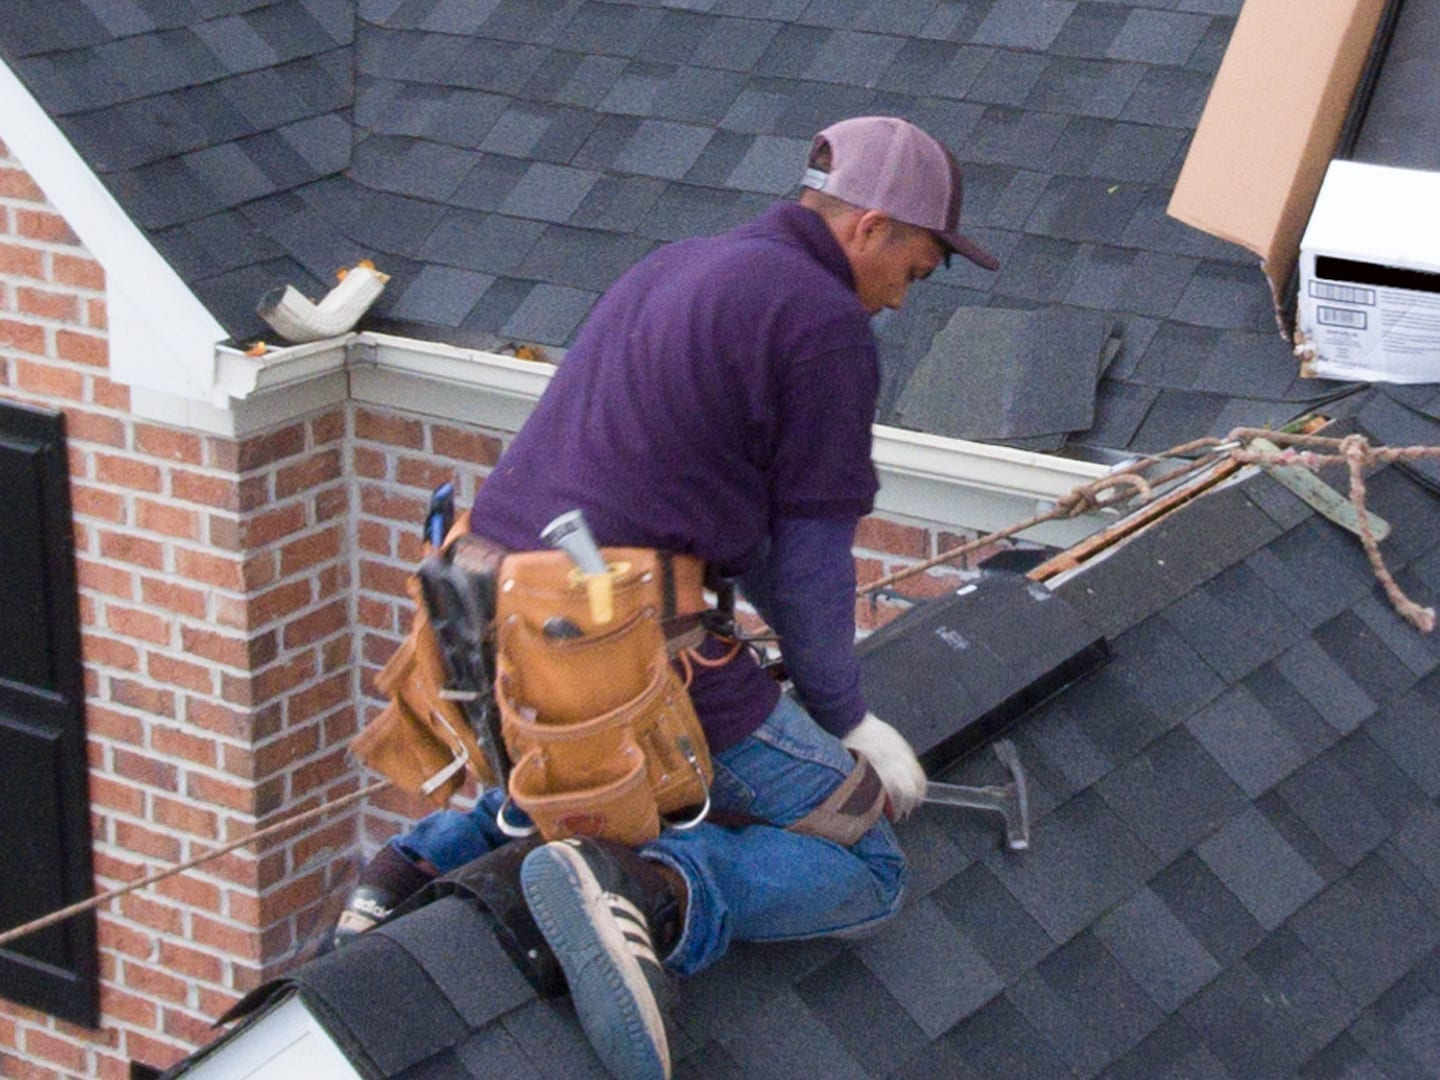 roofer using a roofing hatchet to install ridge cap shingles